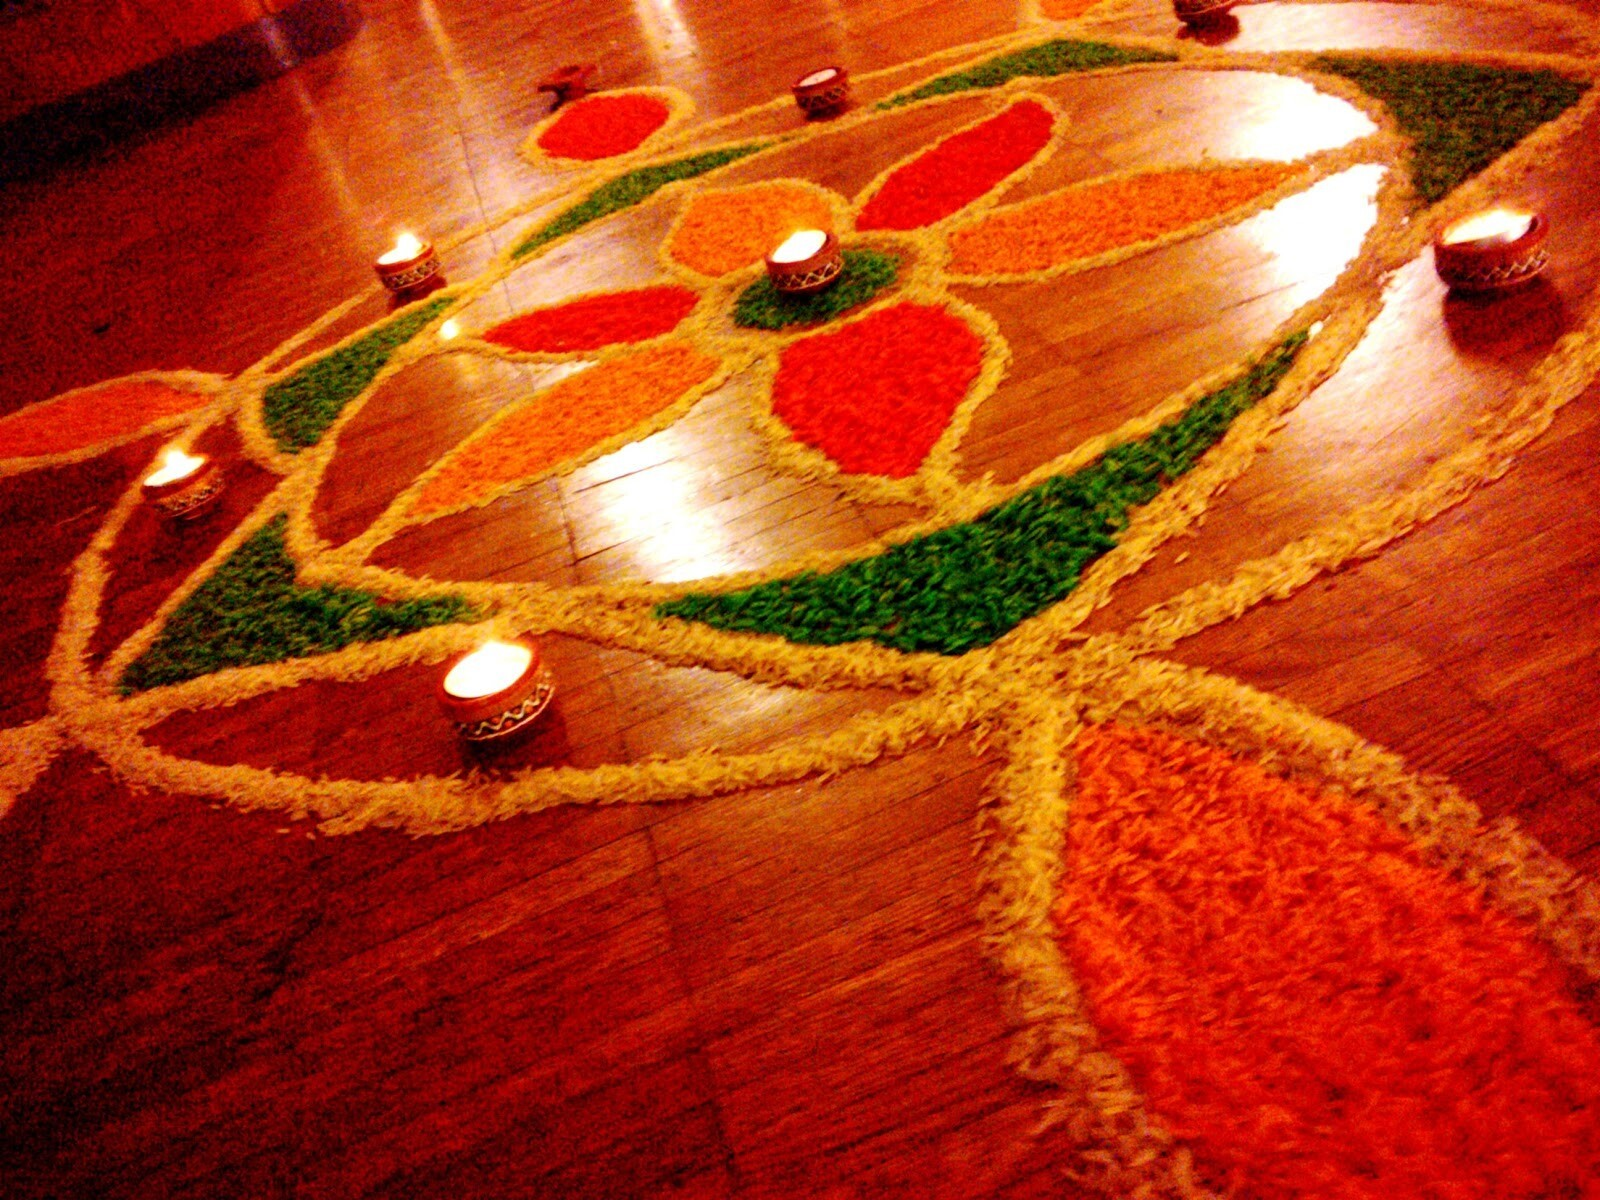 Rangoli Designs with Flowers for Diwali in India   HD ...  Diwali Rangoli Images Designs Diwali Rangoli